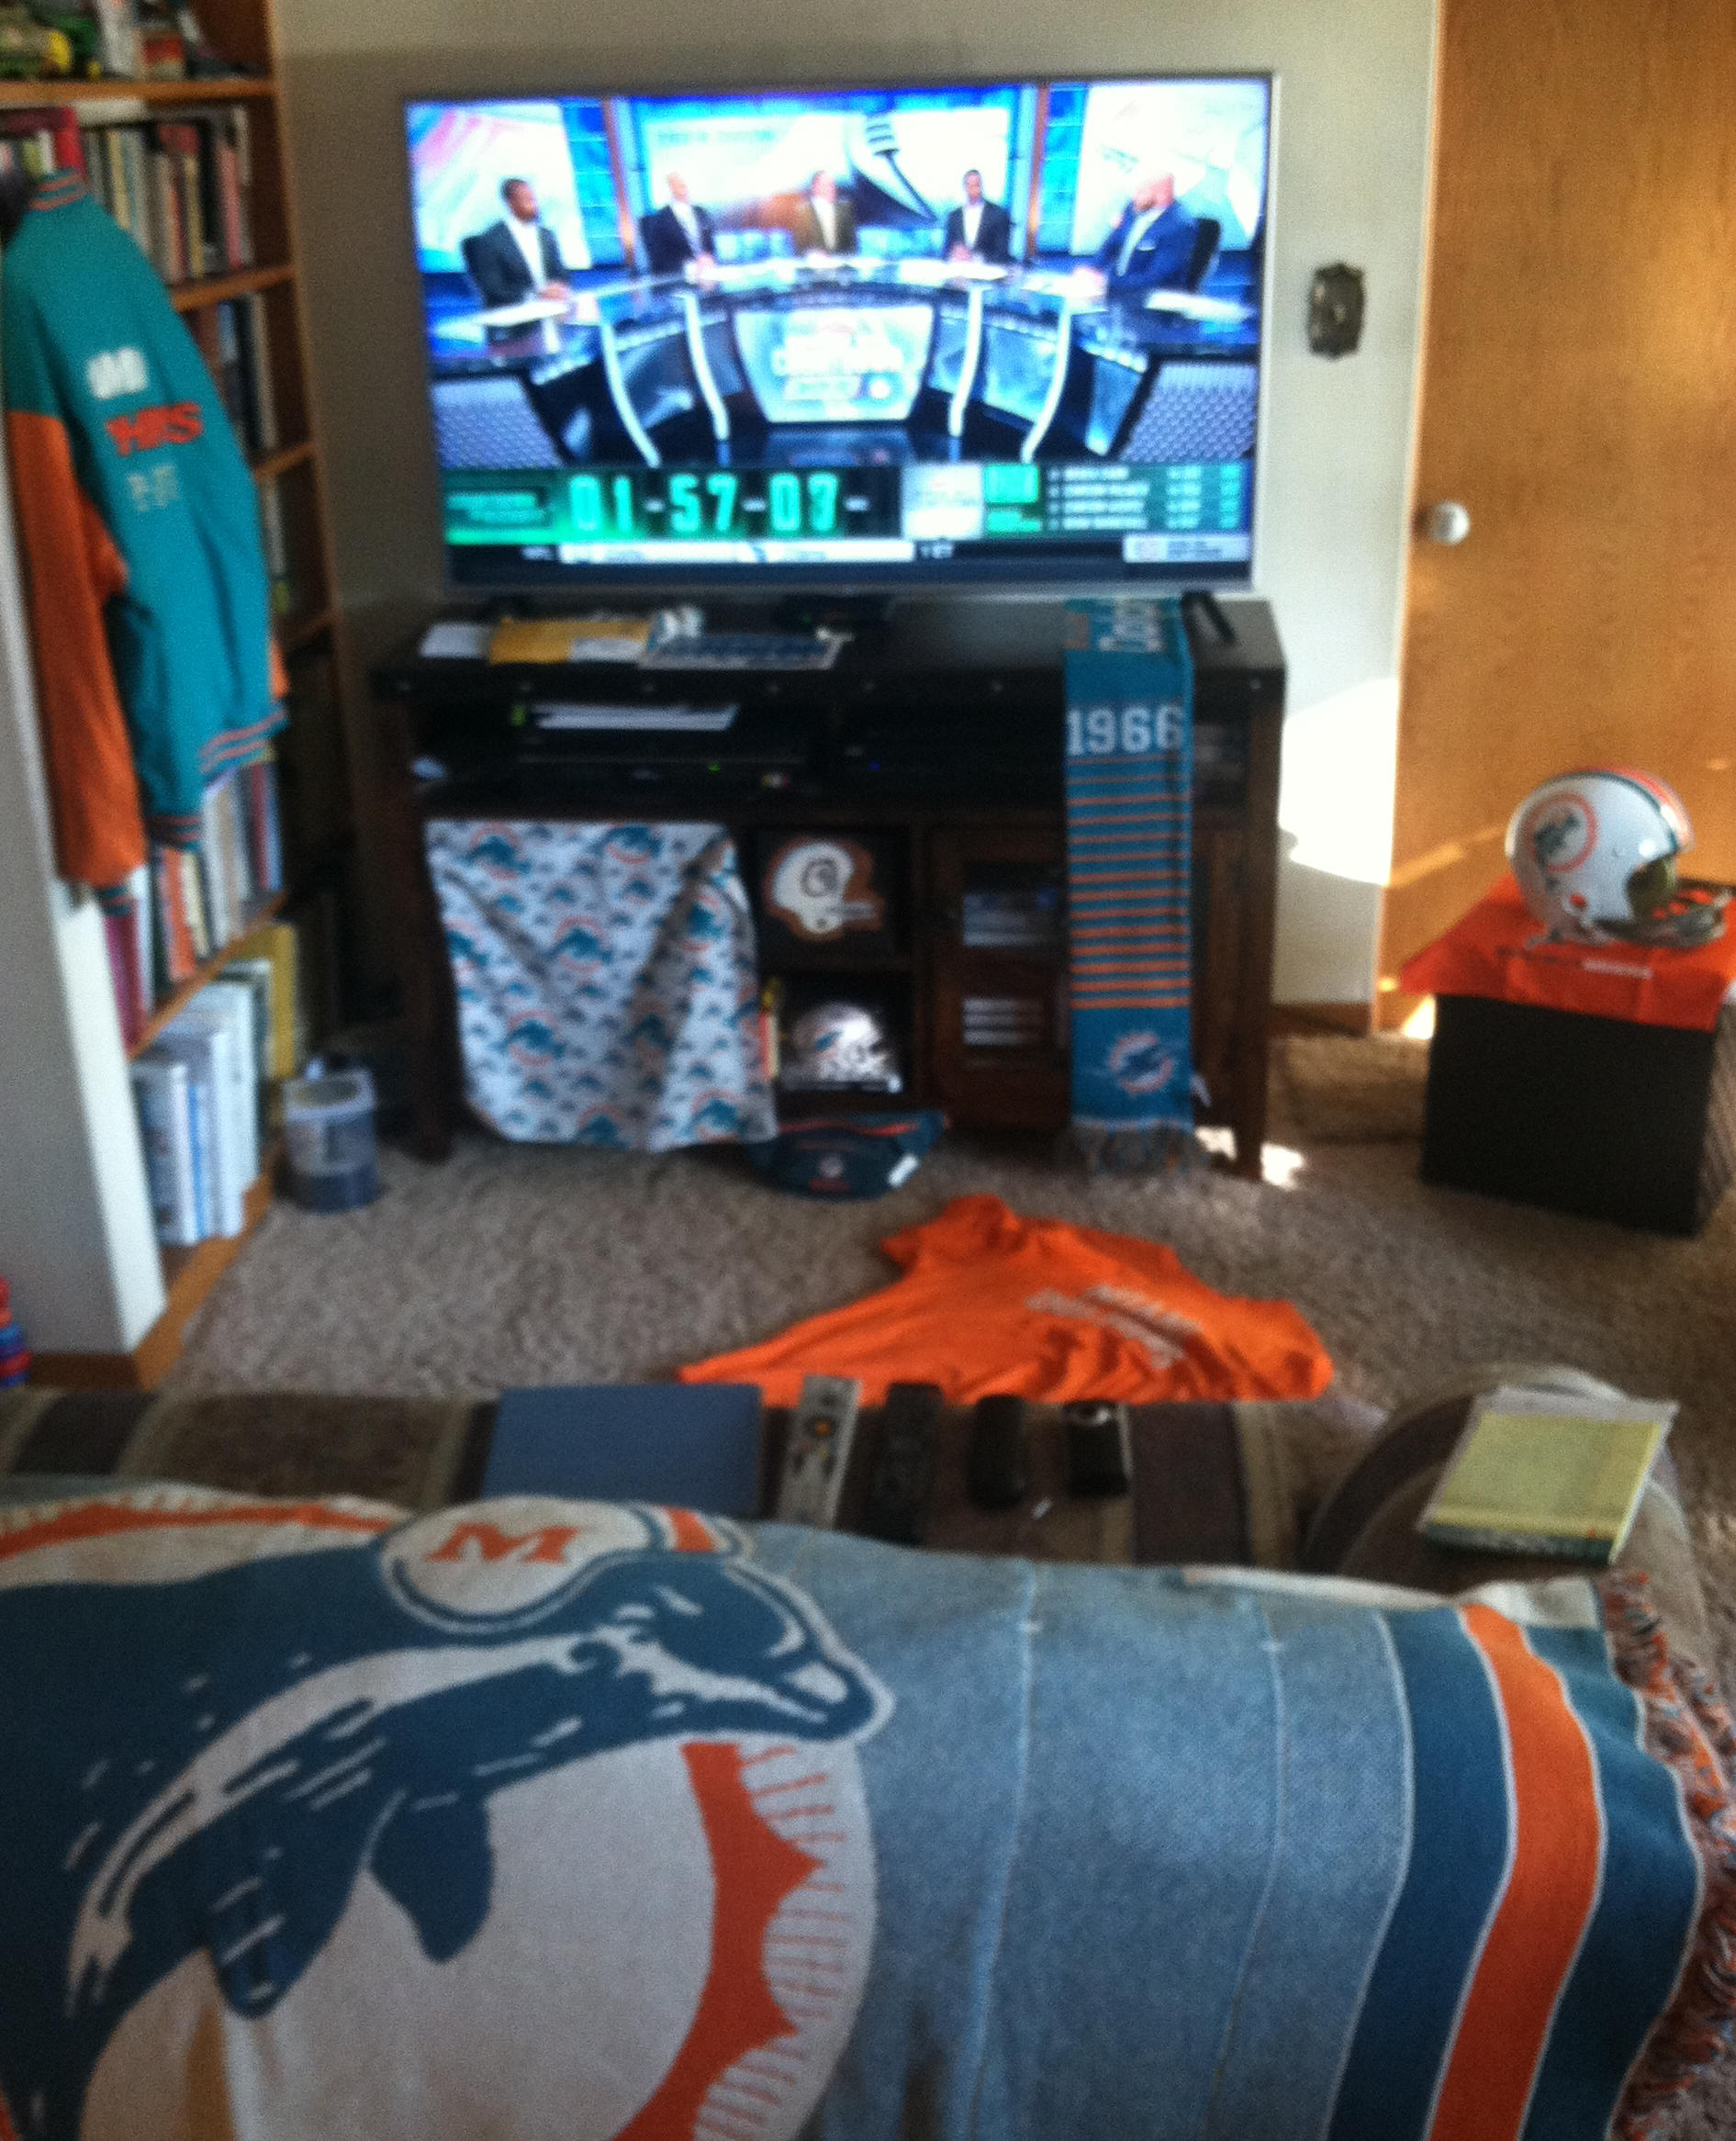 Had the living room set up for FINS 28, Buf 25 on 10-23-16